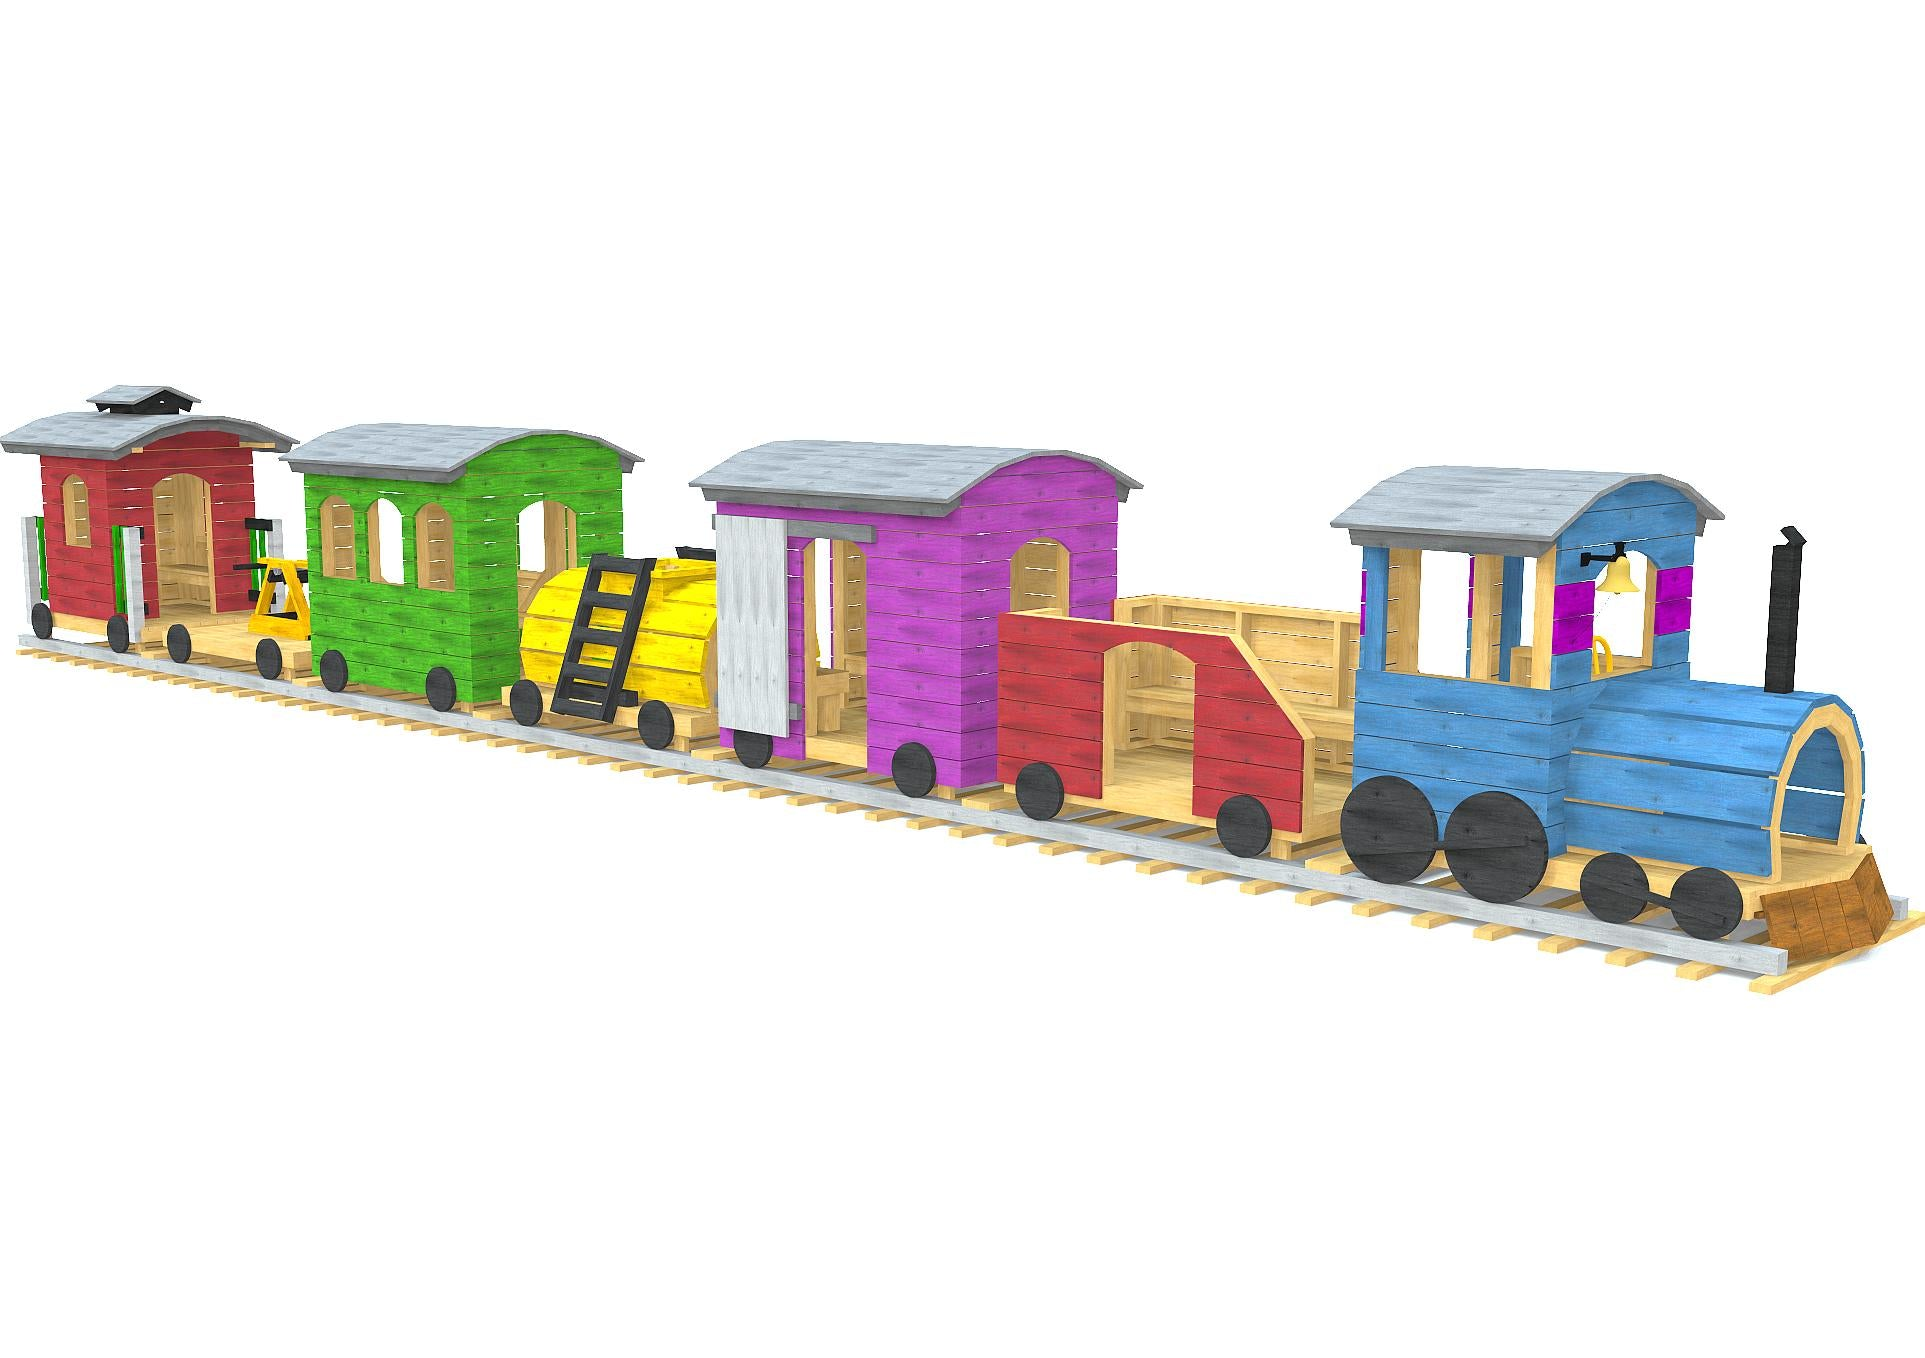 Wooden, playground train play-set plan with seven unique cars